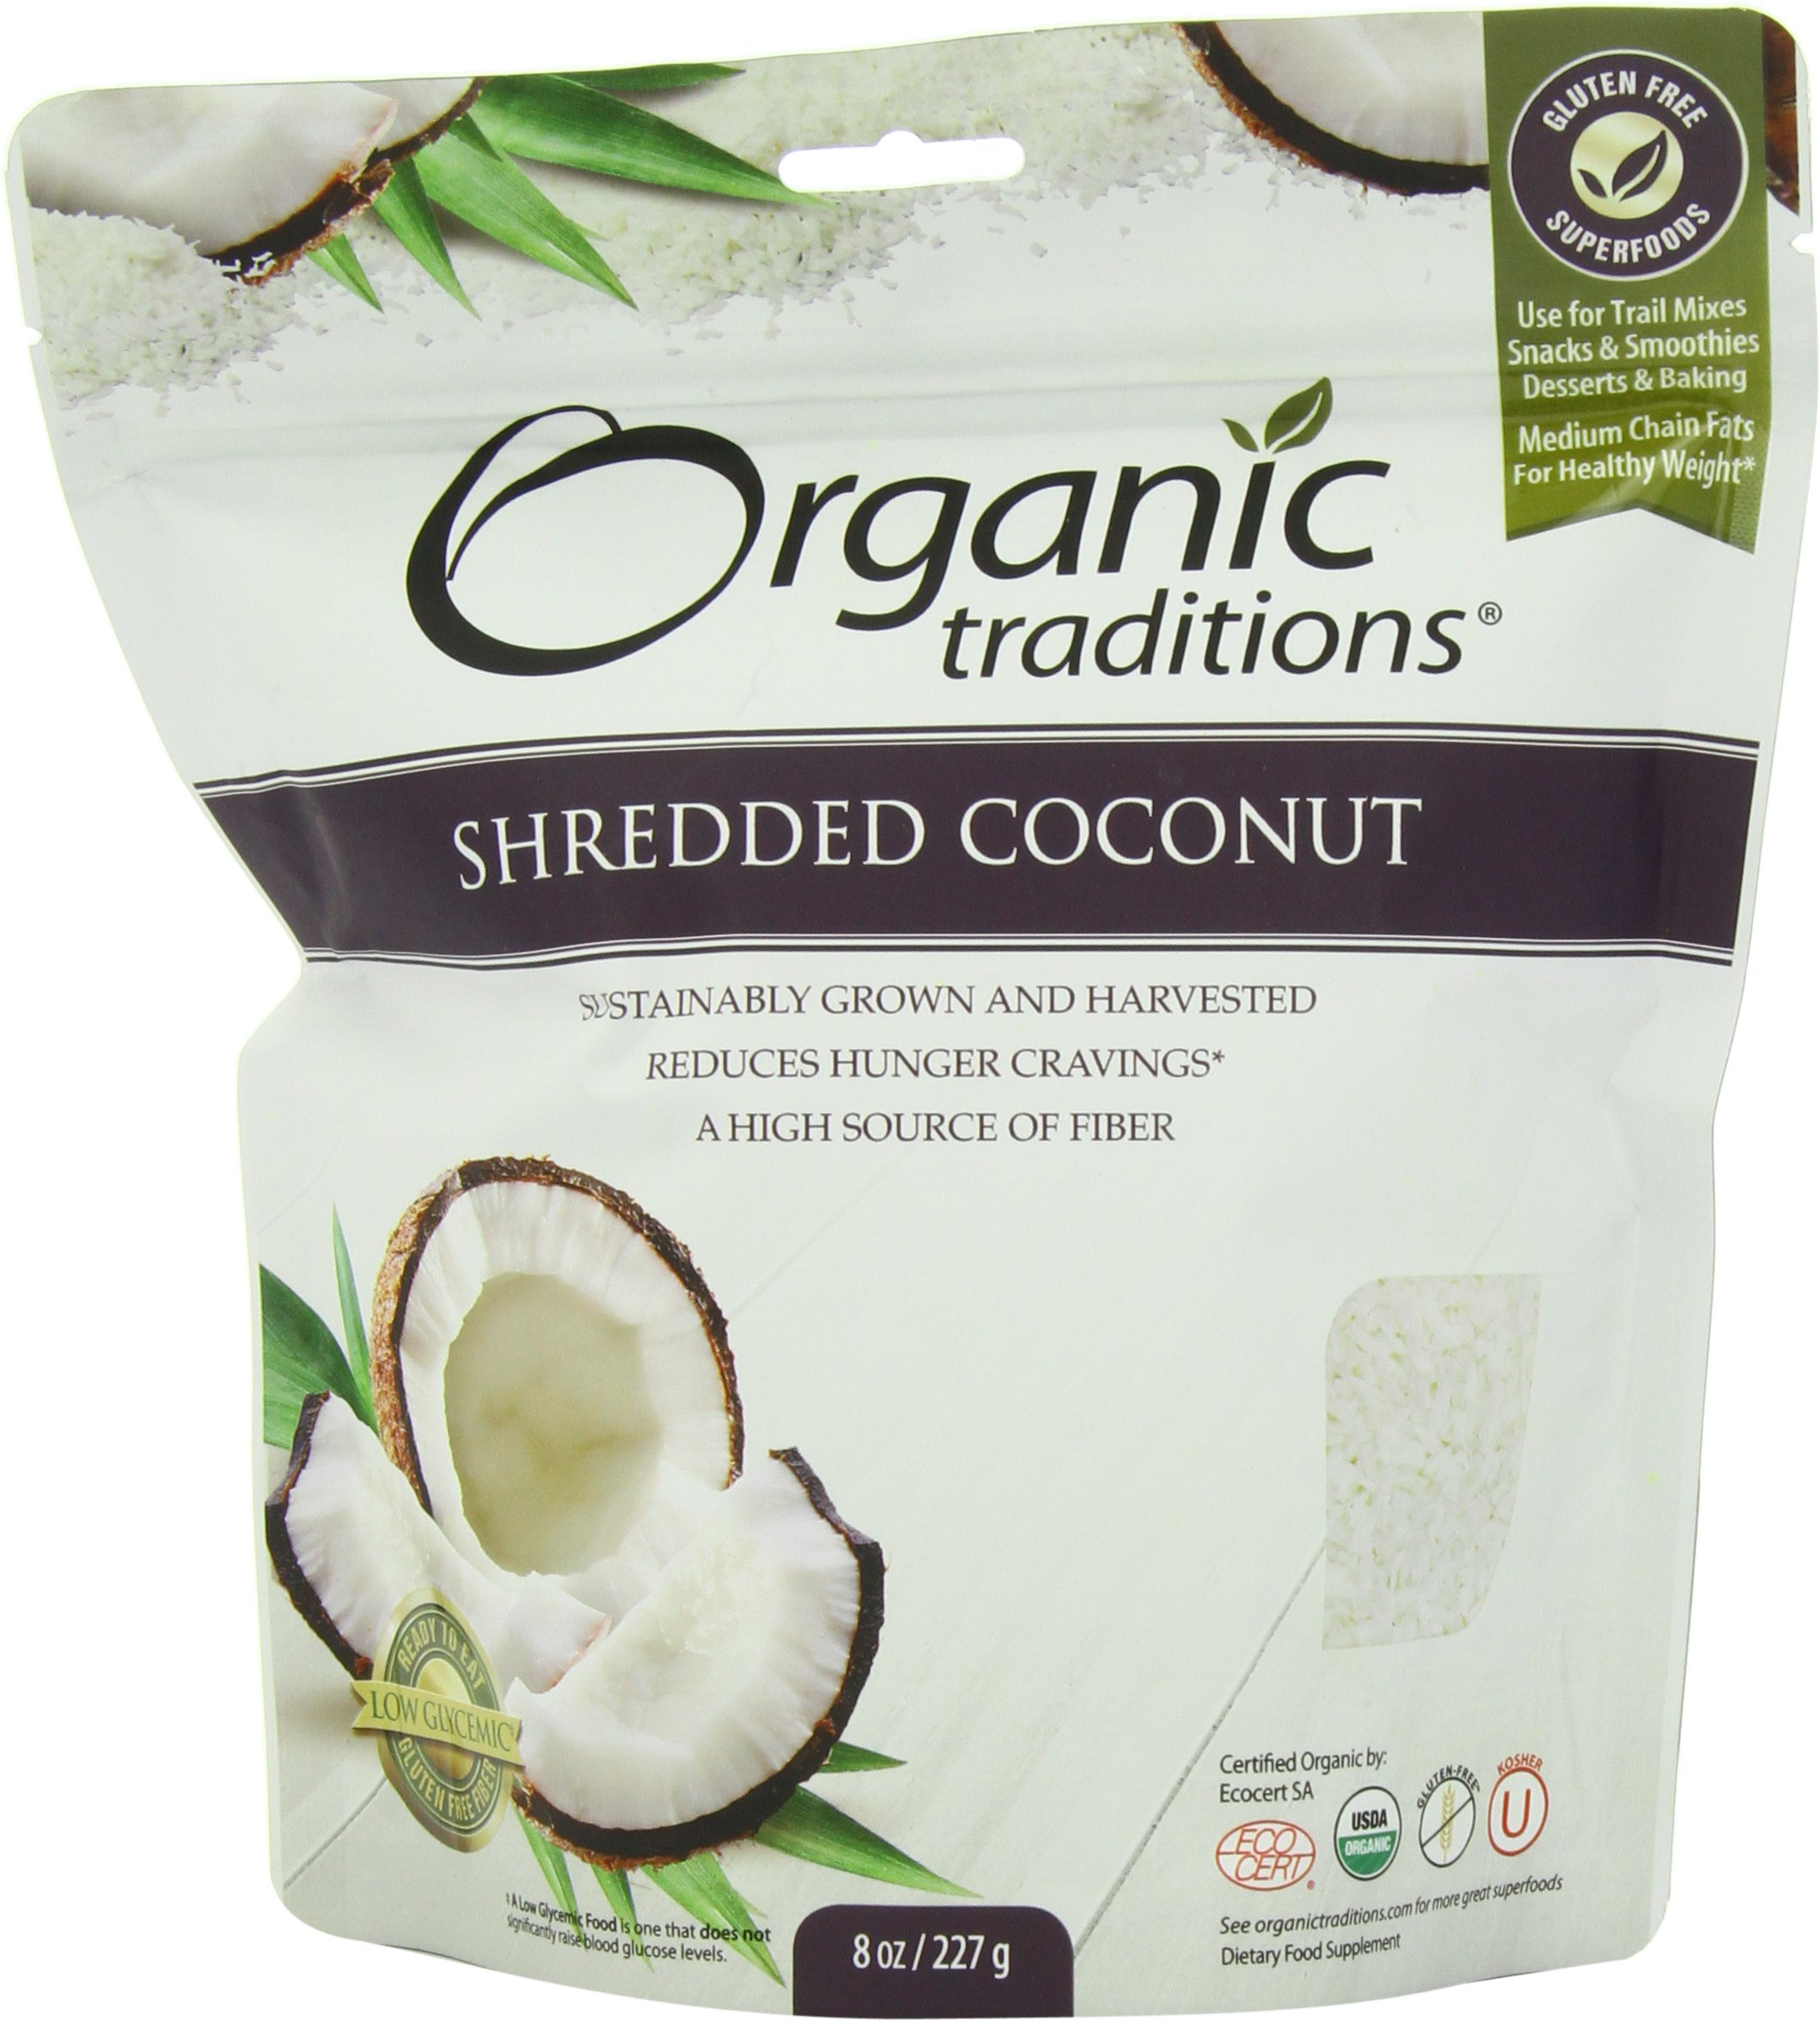 Organic Traditions Organic Shredded Coconut, 8 Ounce (Pack of 12) by Organic Traditions (Image #1)